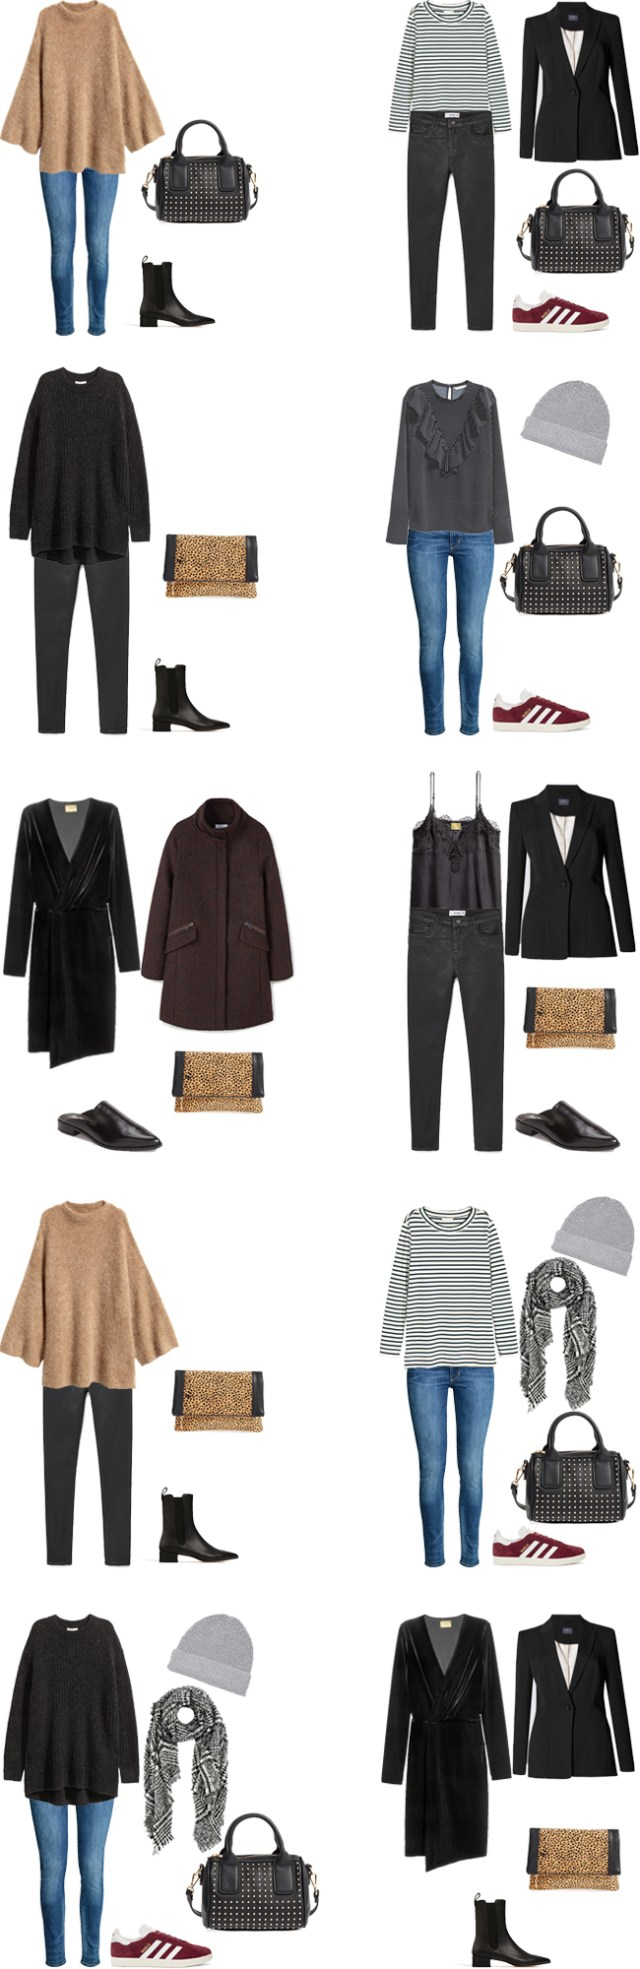 What to Wear in New York City 4 Days in December Outfit Options #packinglight #packinglist #travellight #traveltips #travel